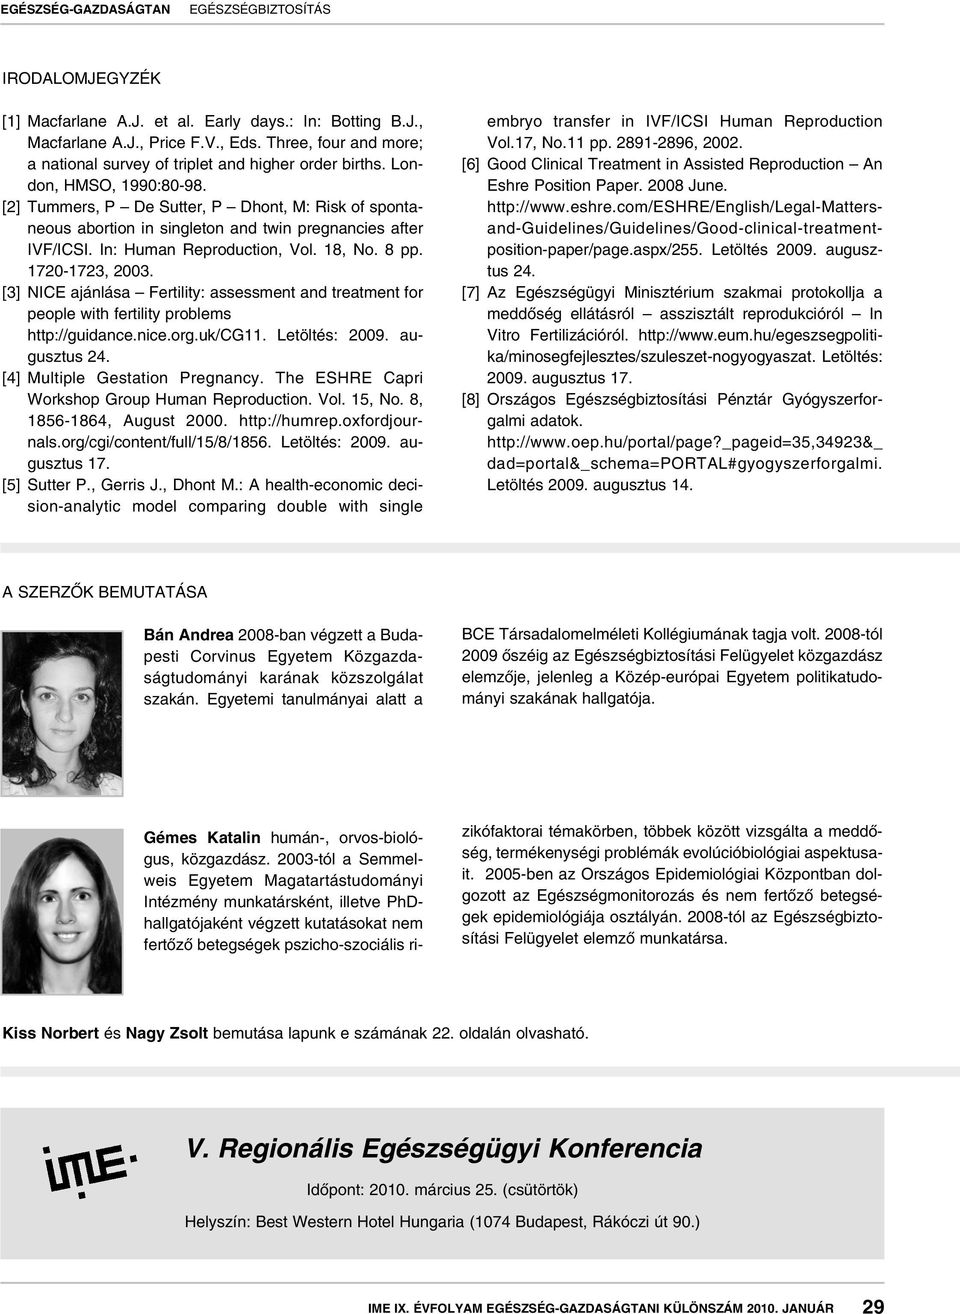 1720-1723, 2003. [3] NICE ajánlása Fertility: assessment and treatment for people with fertility problems http://guidance.nice.org.uk/cg11. Letöltés: 2009. augusztus 24.